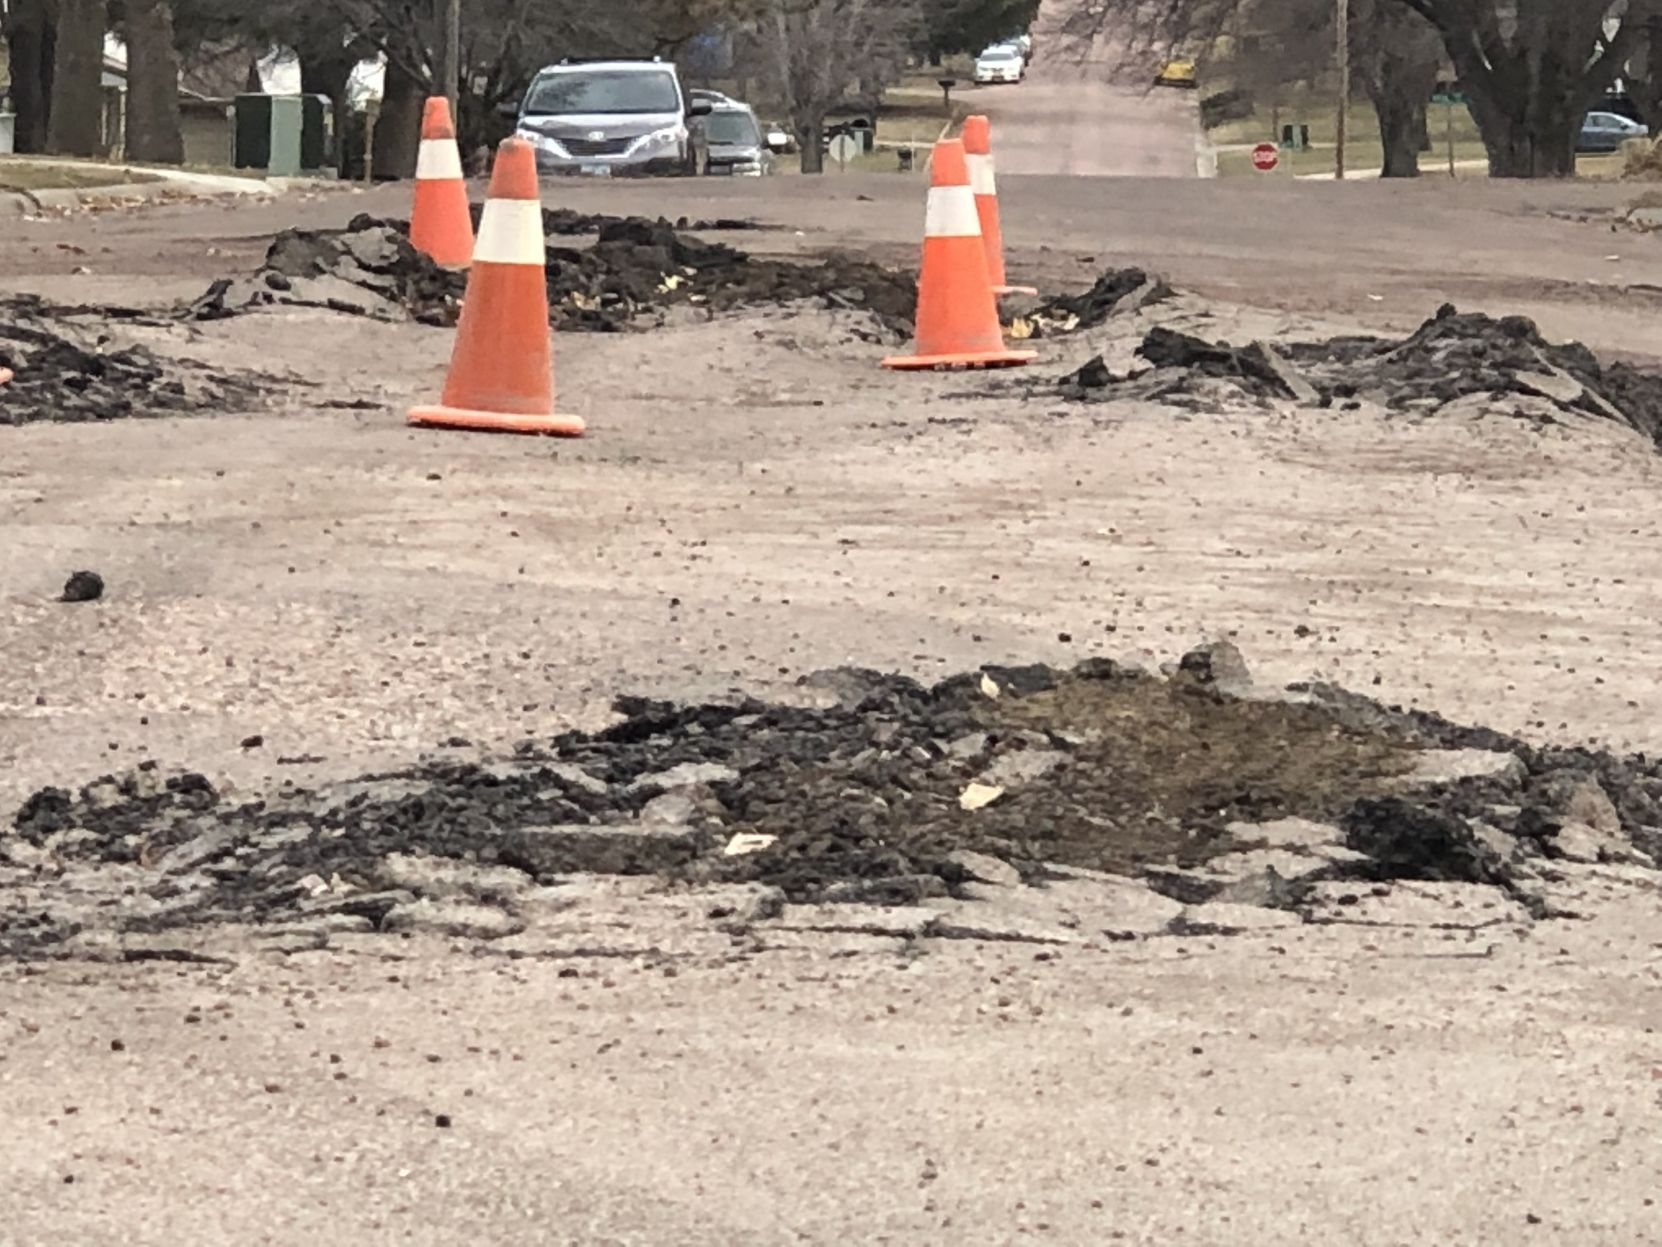 Waterman asks for patience during road work